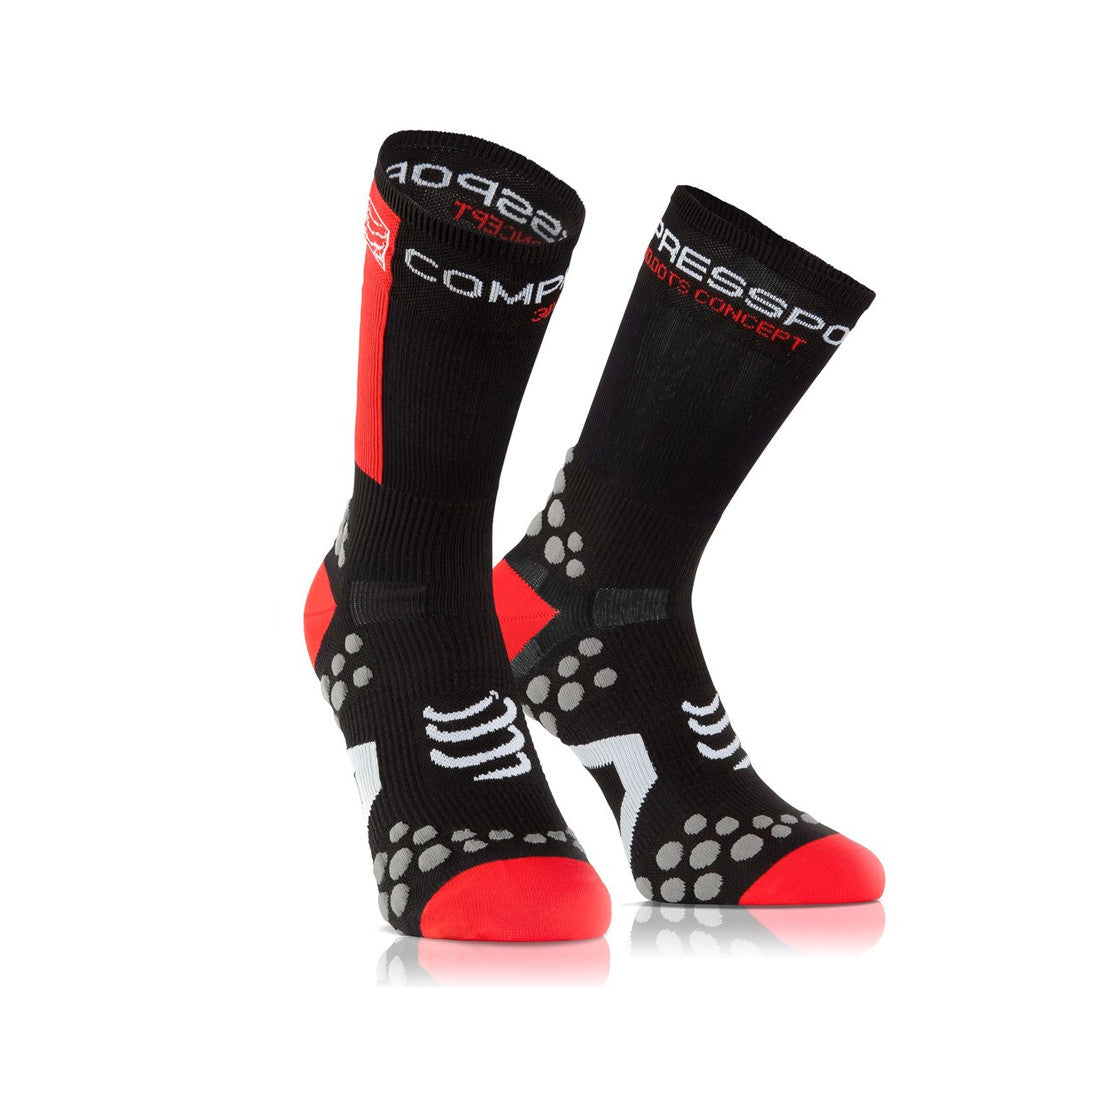 Compressport V2.1 Pro Racing Bike Socks